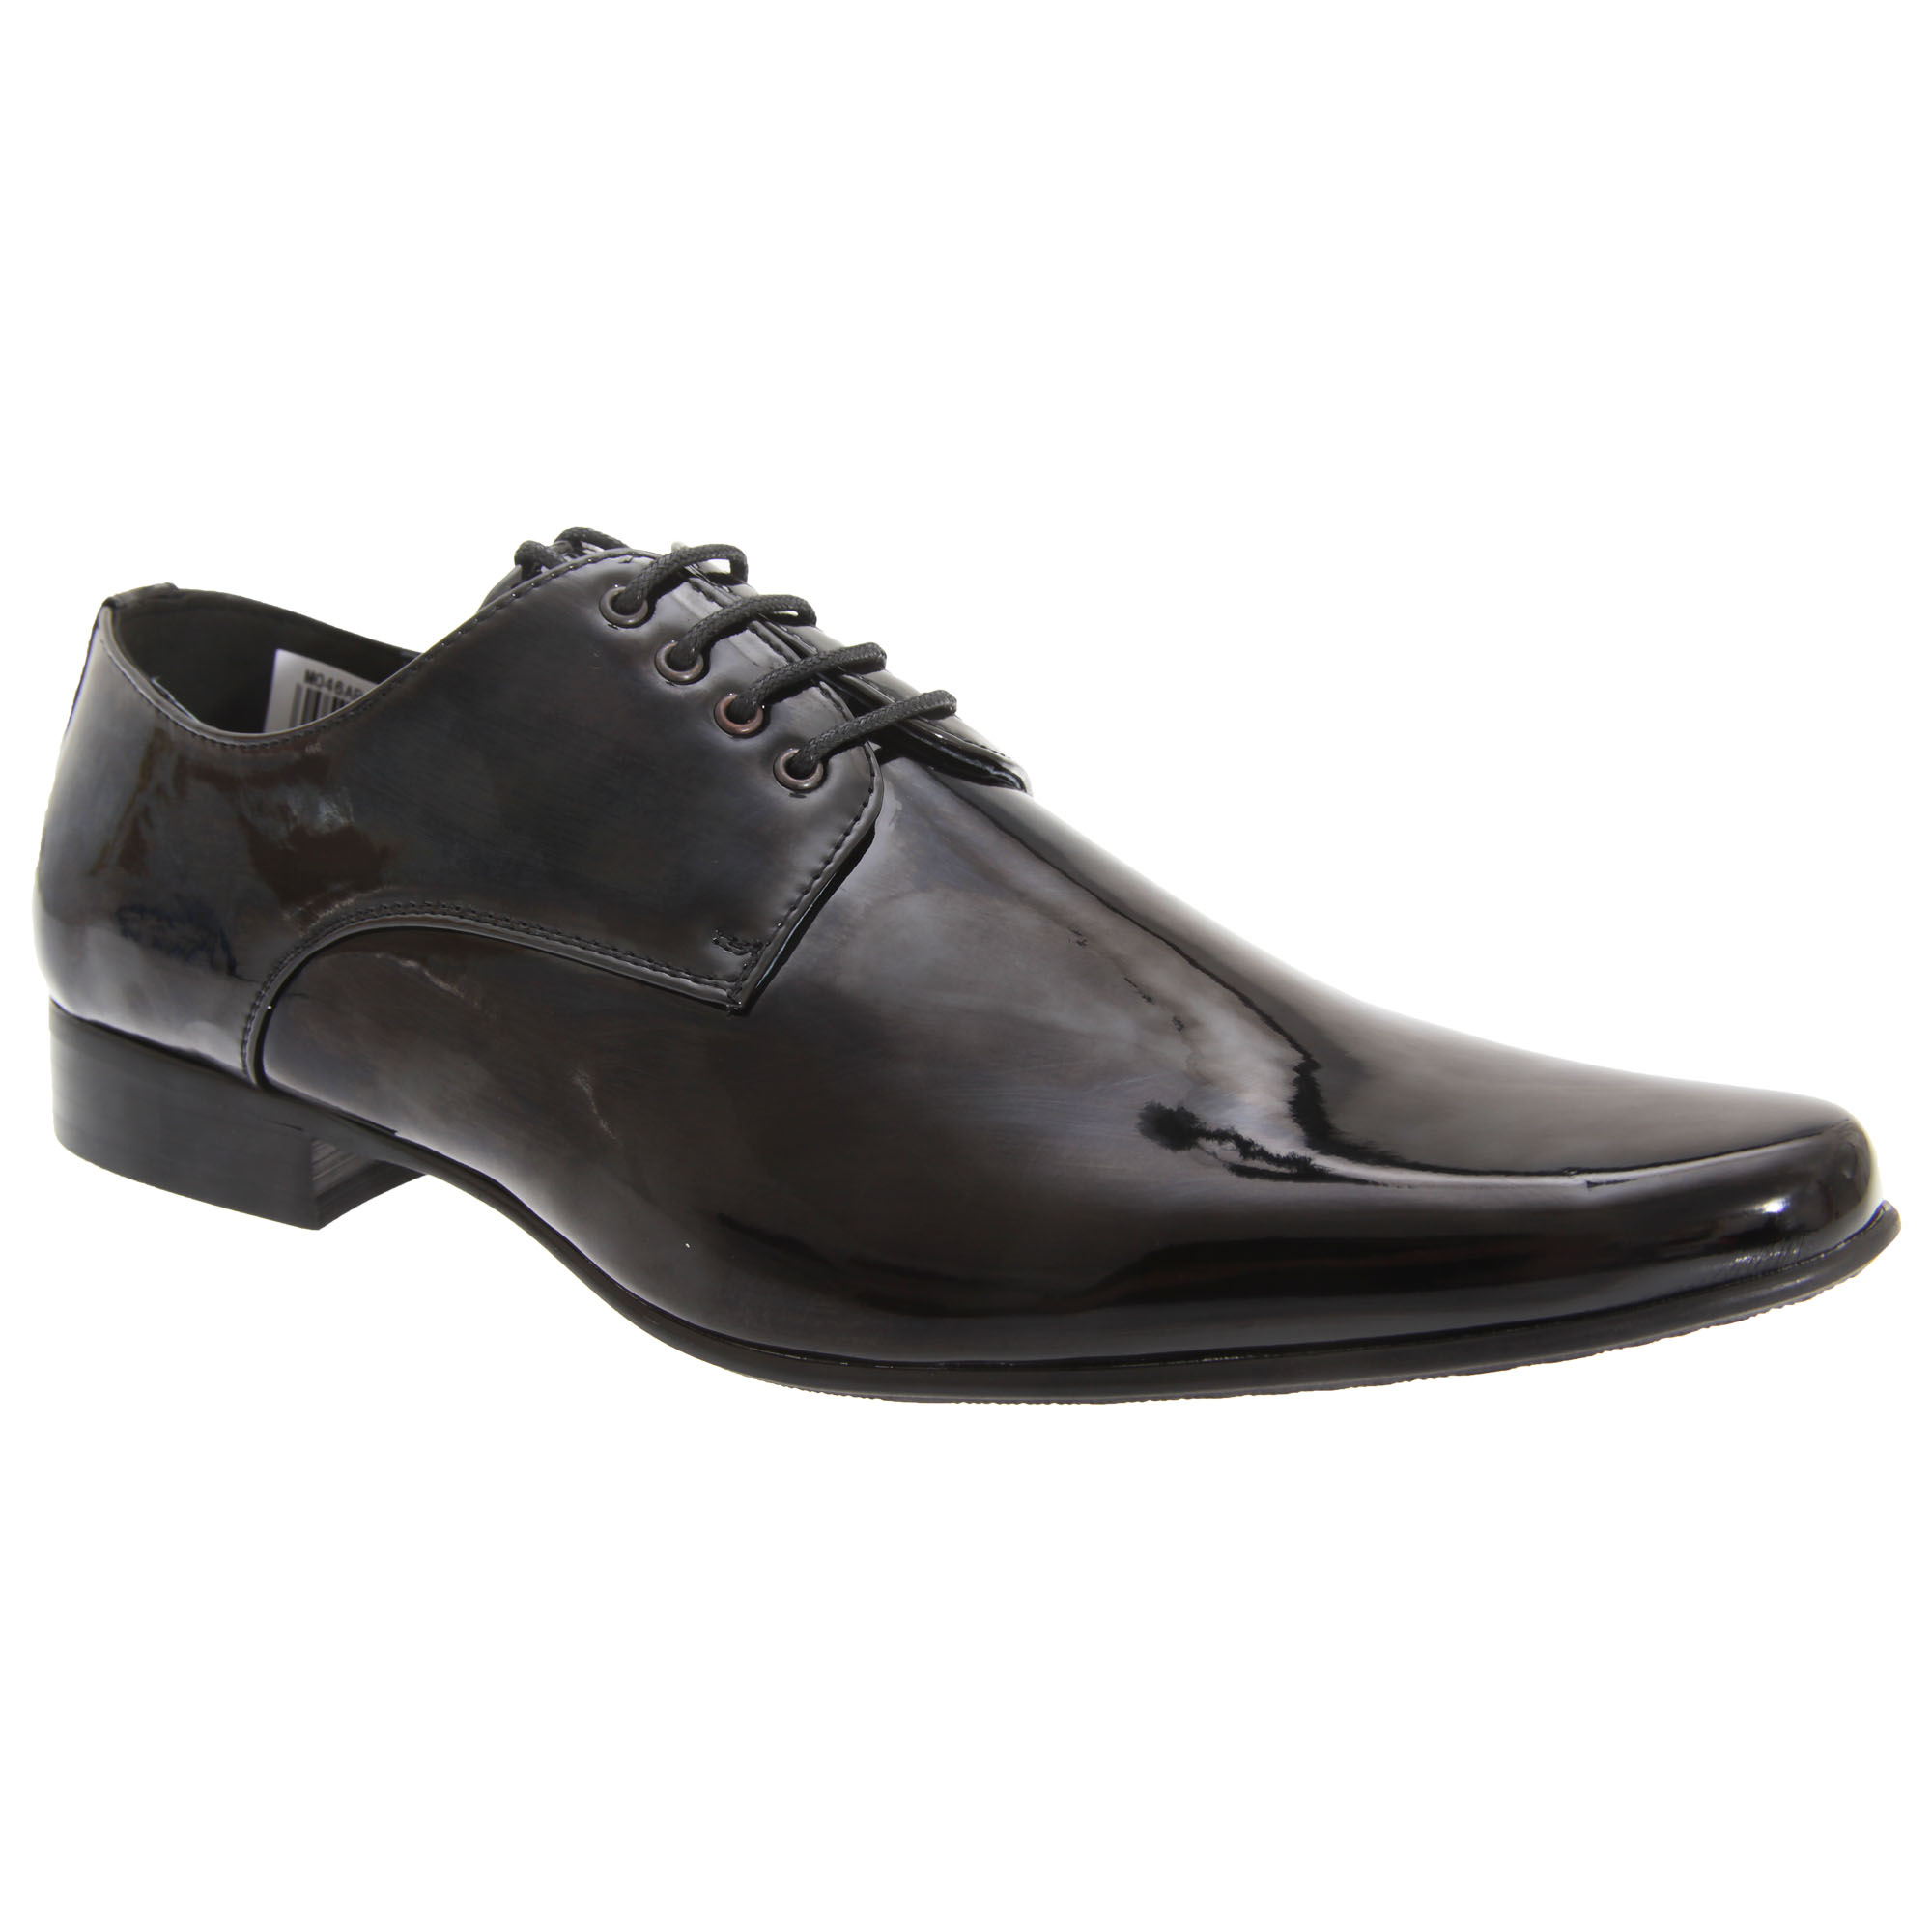 Goor Mens Patent Leather Lace-Up Chisel Toe Gibson Dress Shoes (12 UK) (Black Patent)